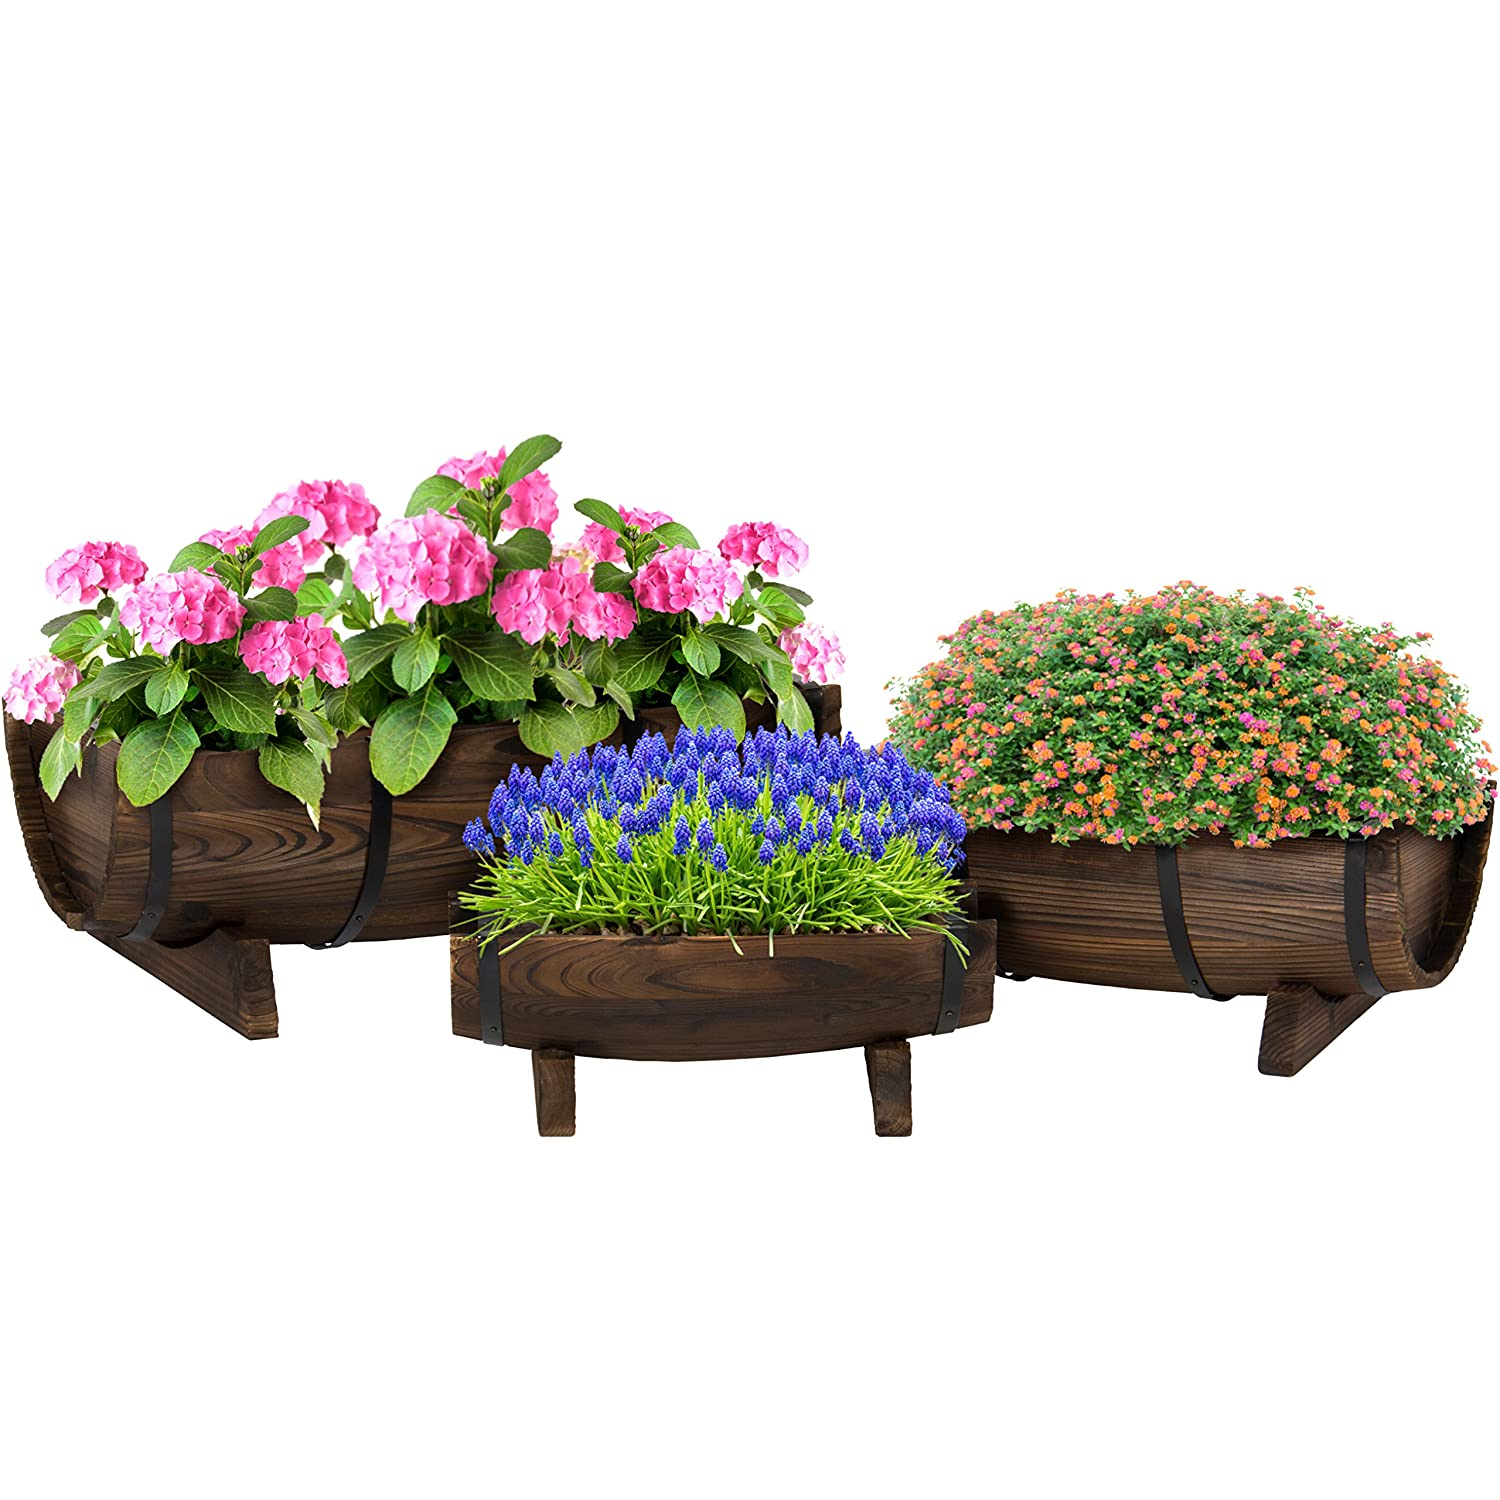 Best Choice Products Set of 3 Garden Decor Rustic Wood Half Barrel Planters – Brown